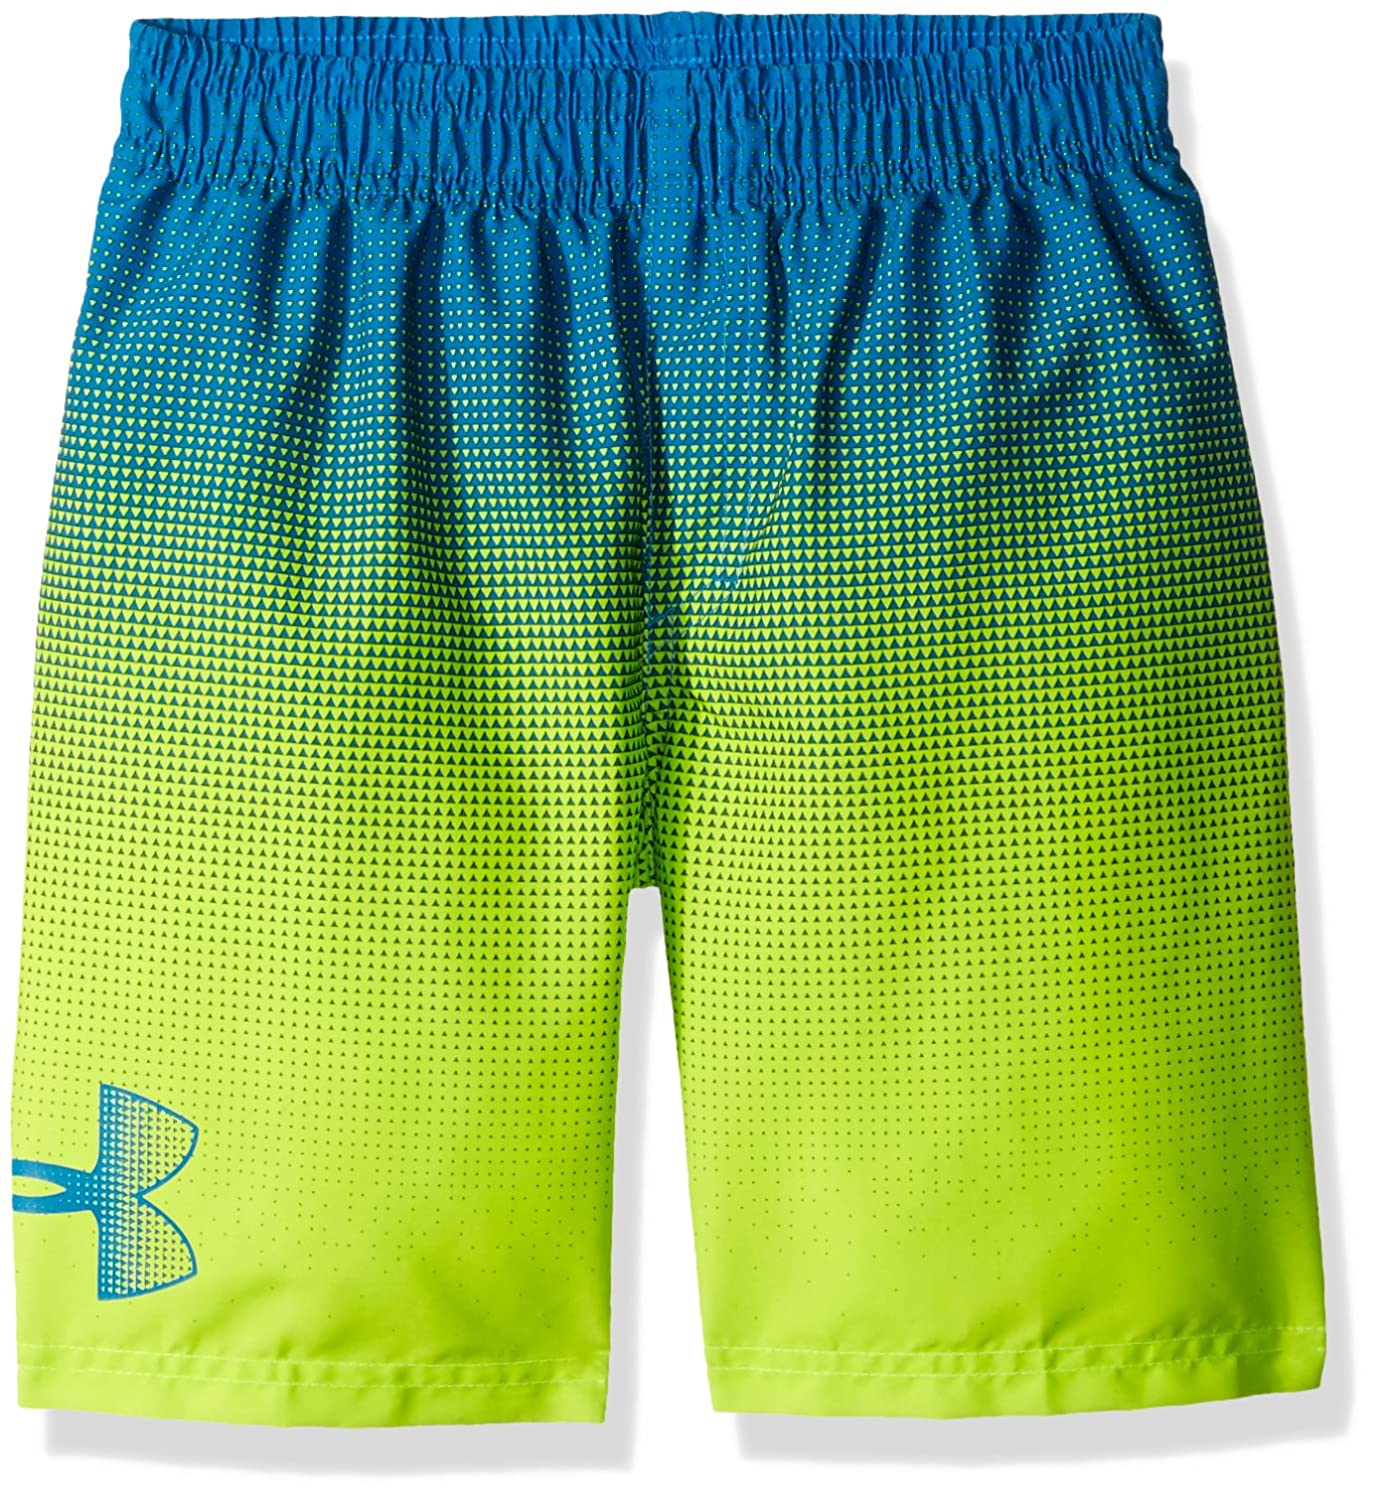 0a13ce5e54 100% Polyester Imported No Closure closure. Machine Wash Quick-dry  construction. UPF 30+. Under Armour ...